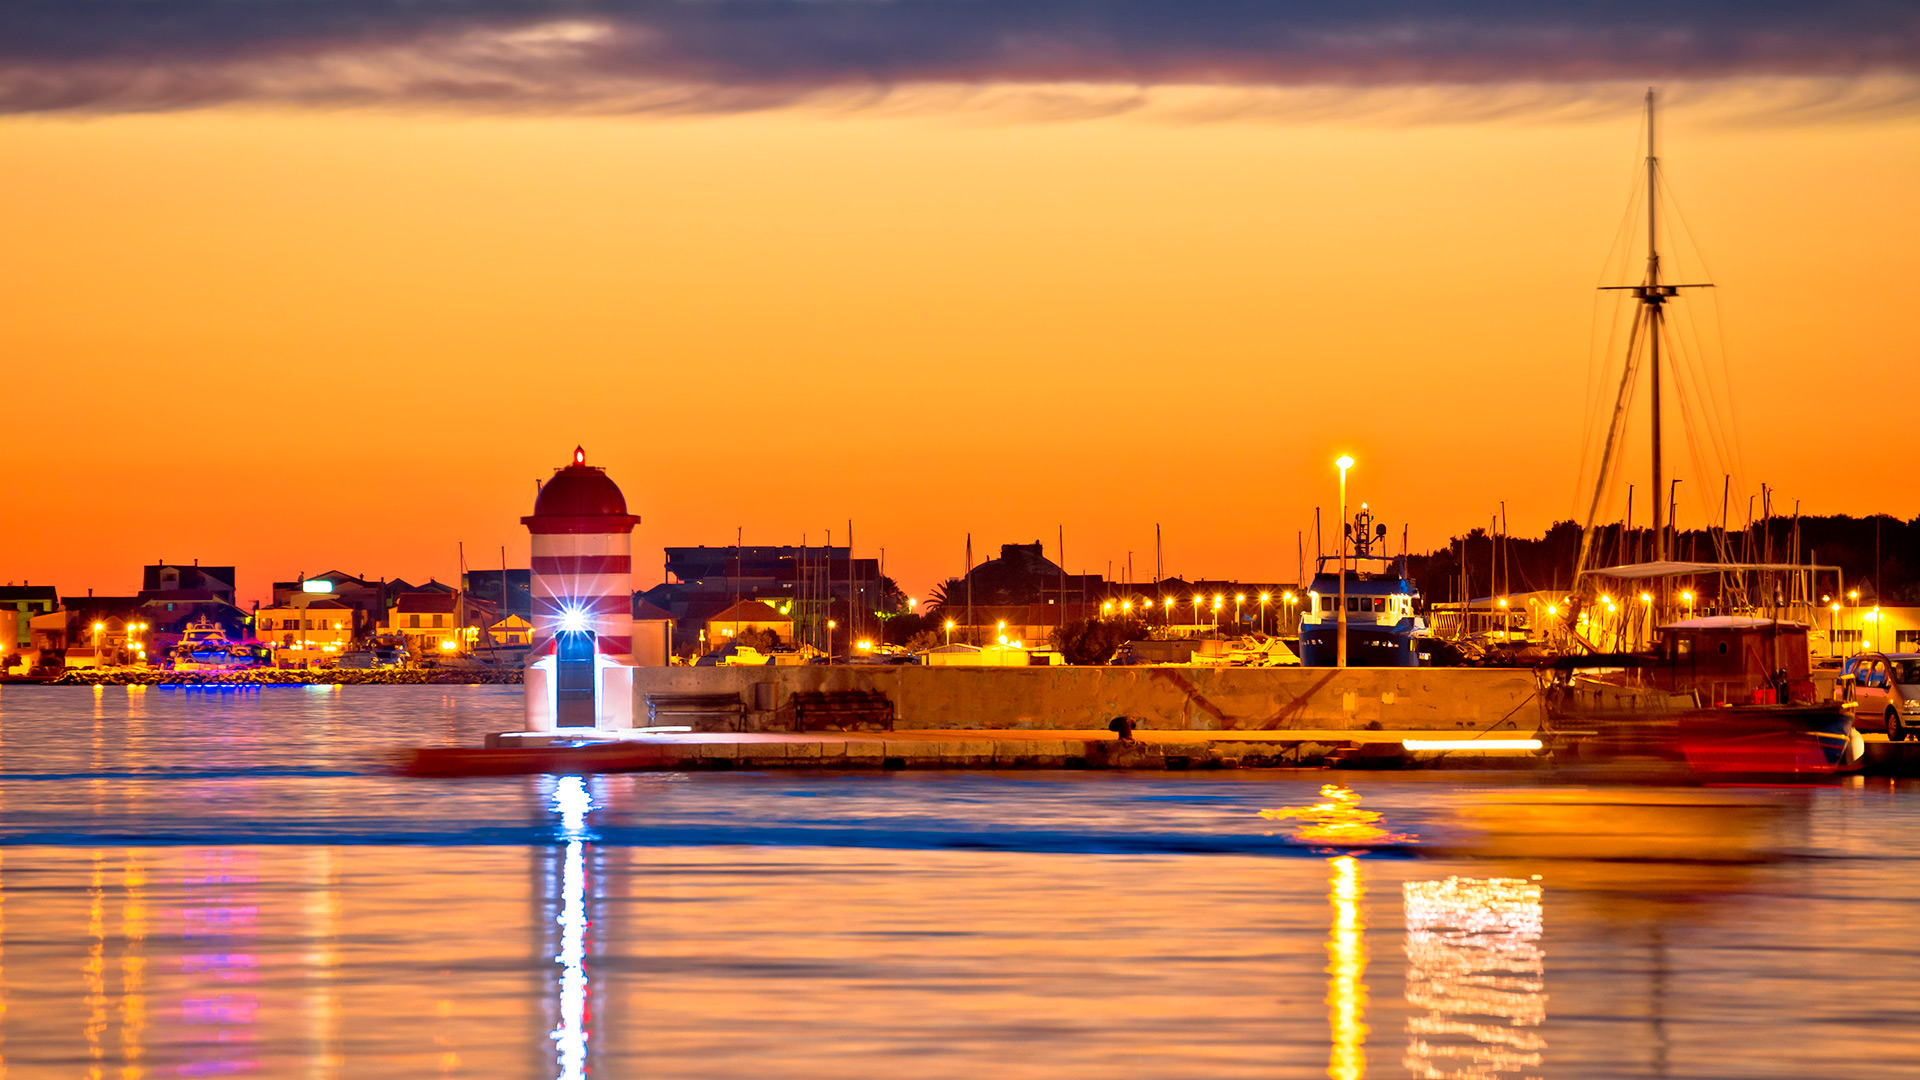 The harbour in the evening light, Zadar, Croatia - Adriatic sailing routes of SimpleSail